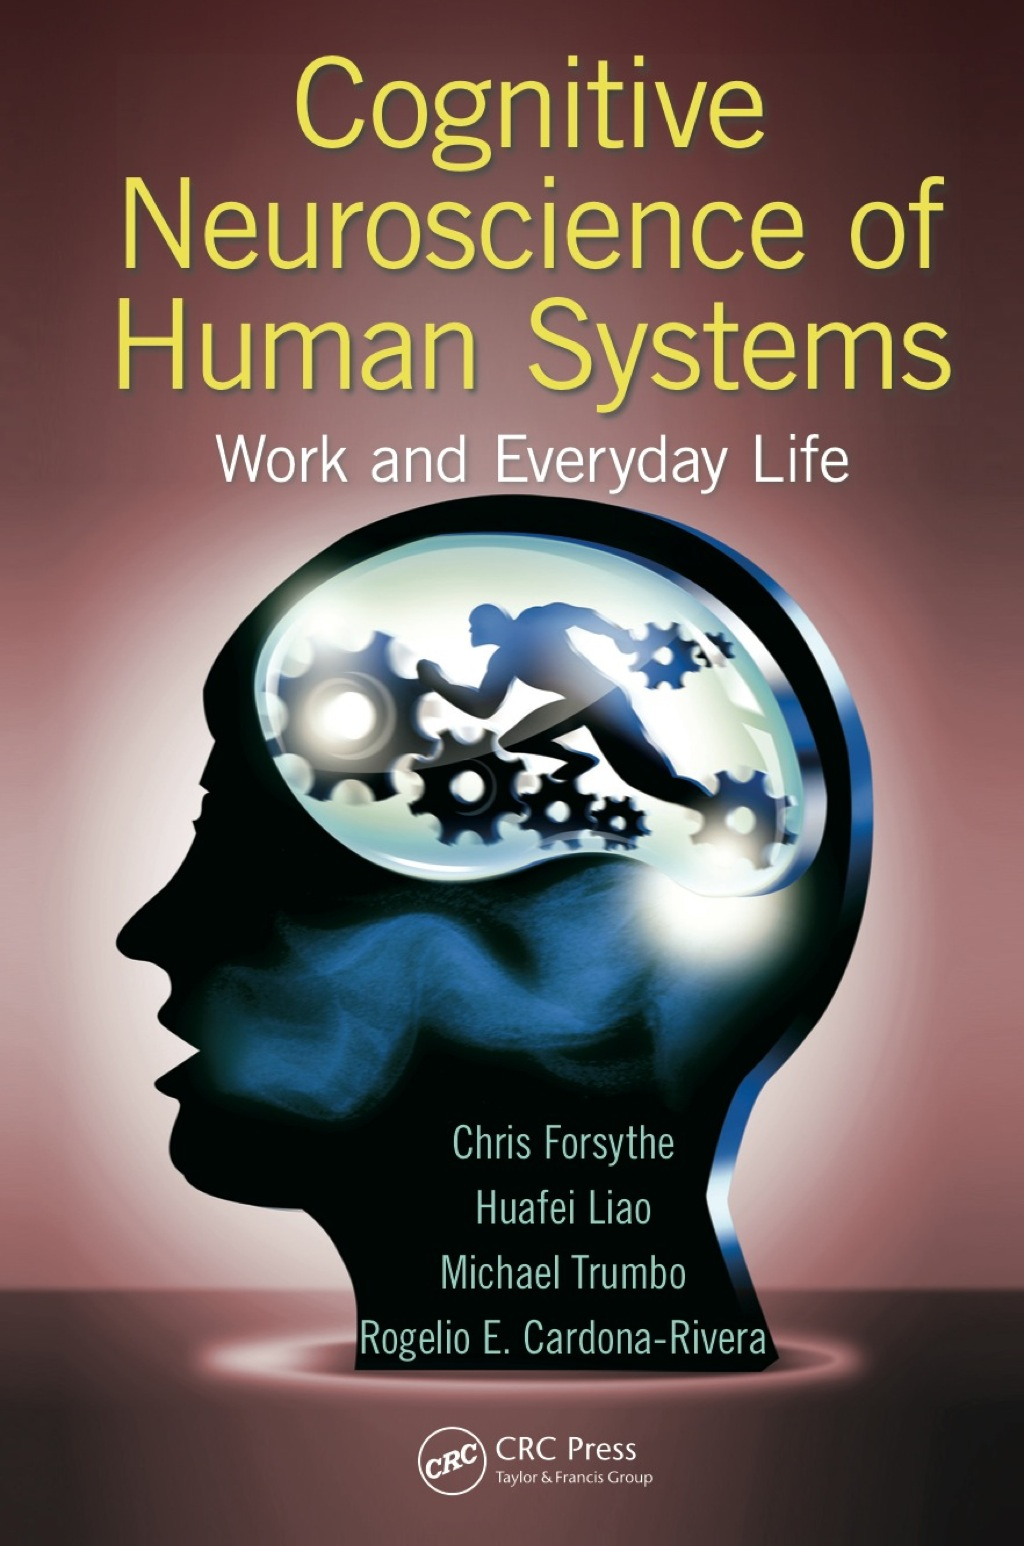 Cognitive Neuroscience of Human Systems (eBook Rental)